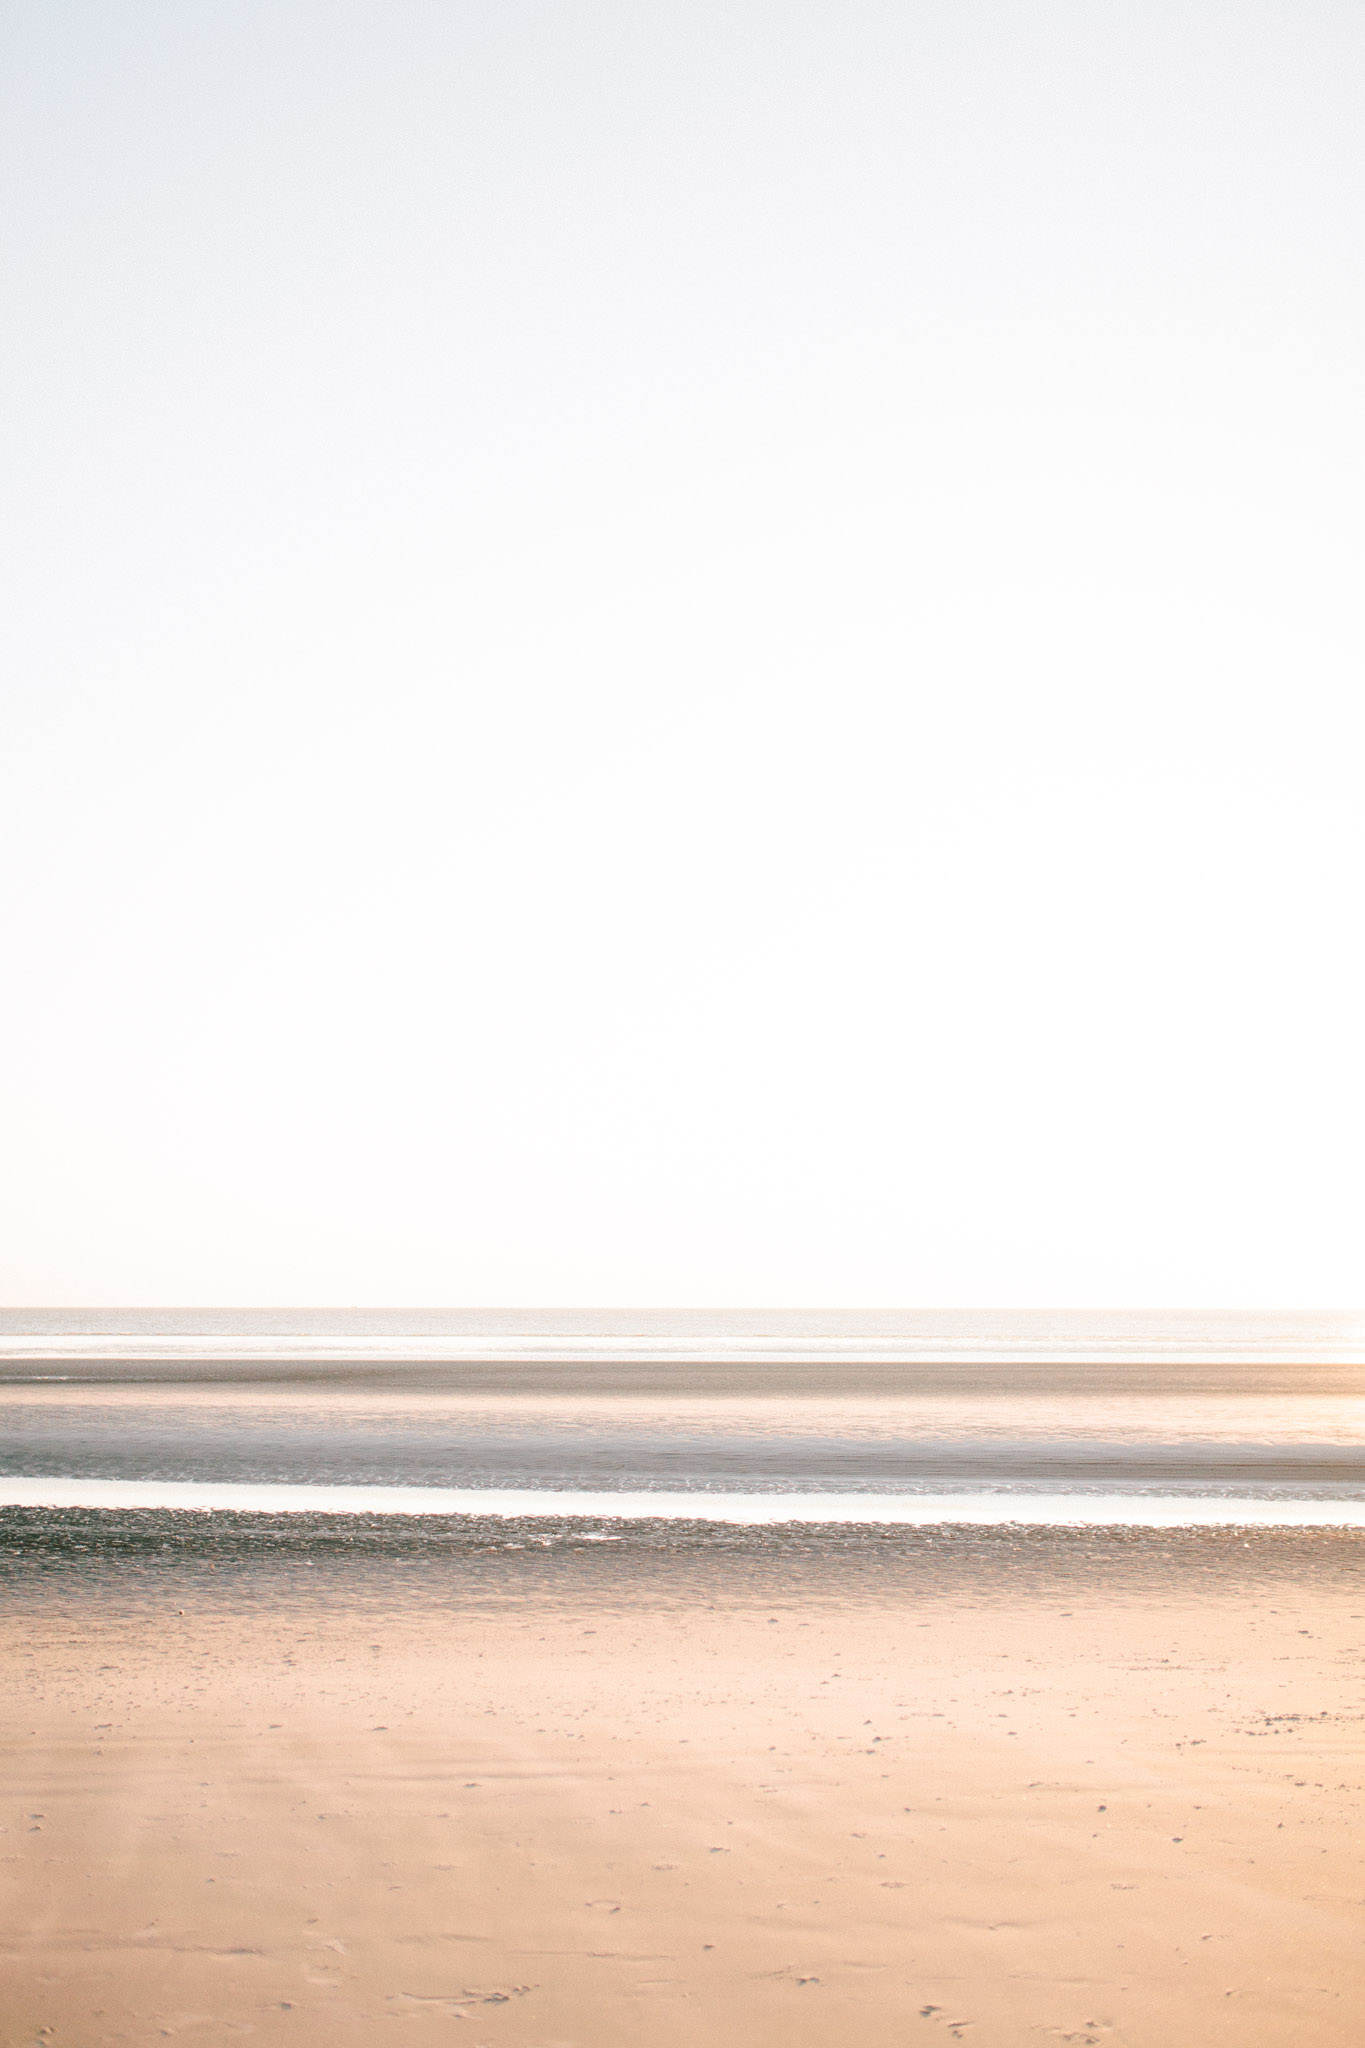 Sankt-Peter-Ording-Engagement-Pia-Anna-Christian-Wedding-Photography-KT-56.jpg